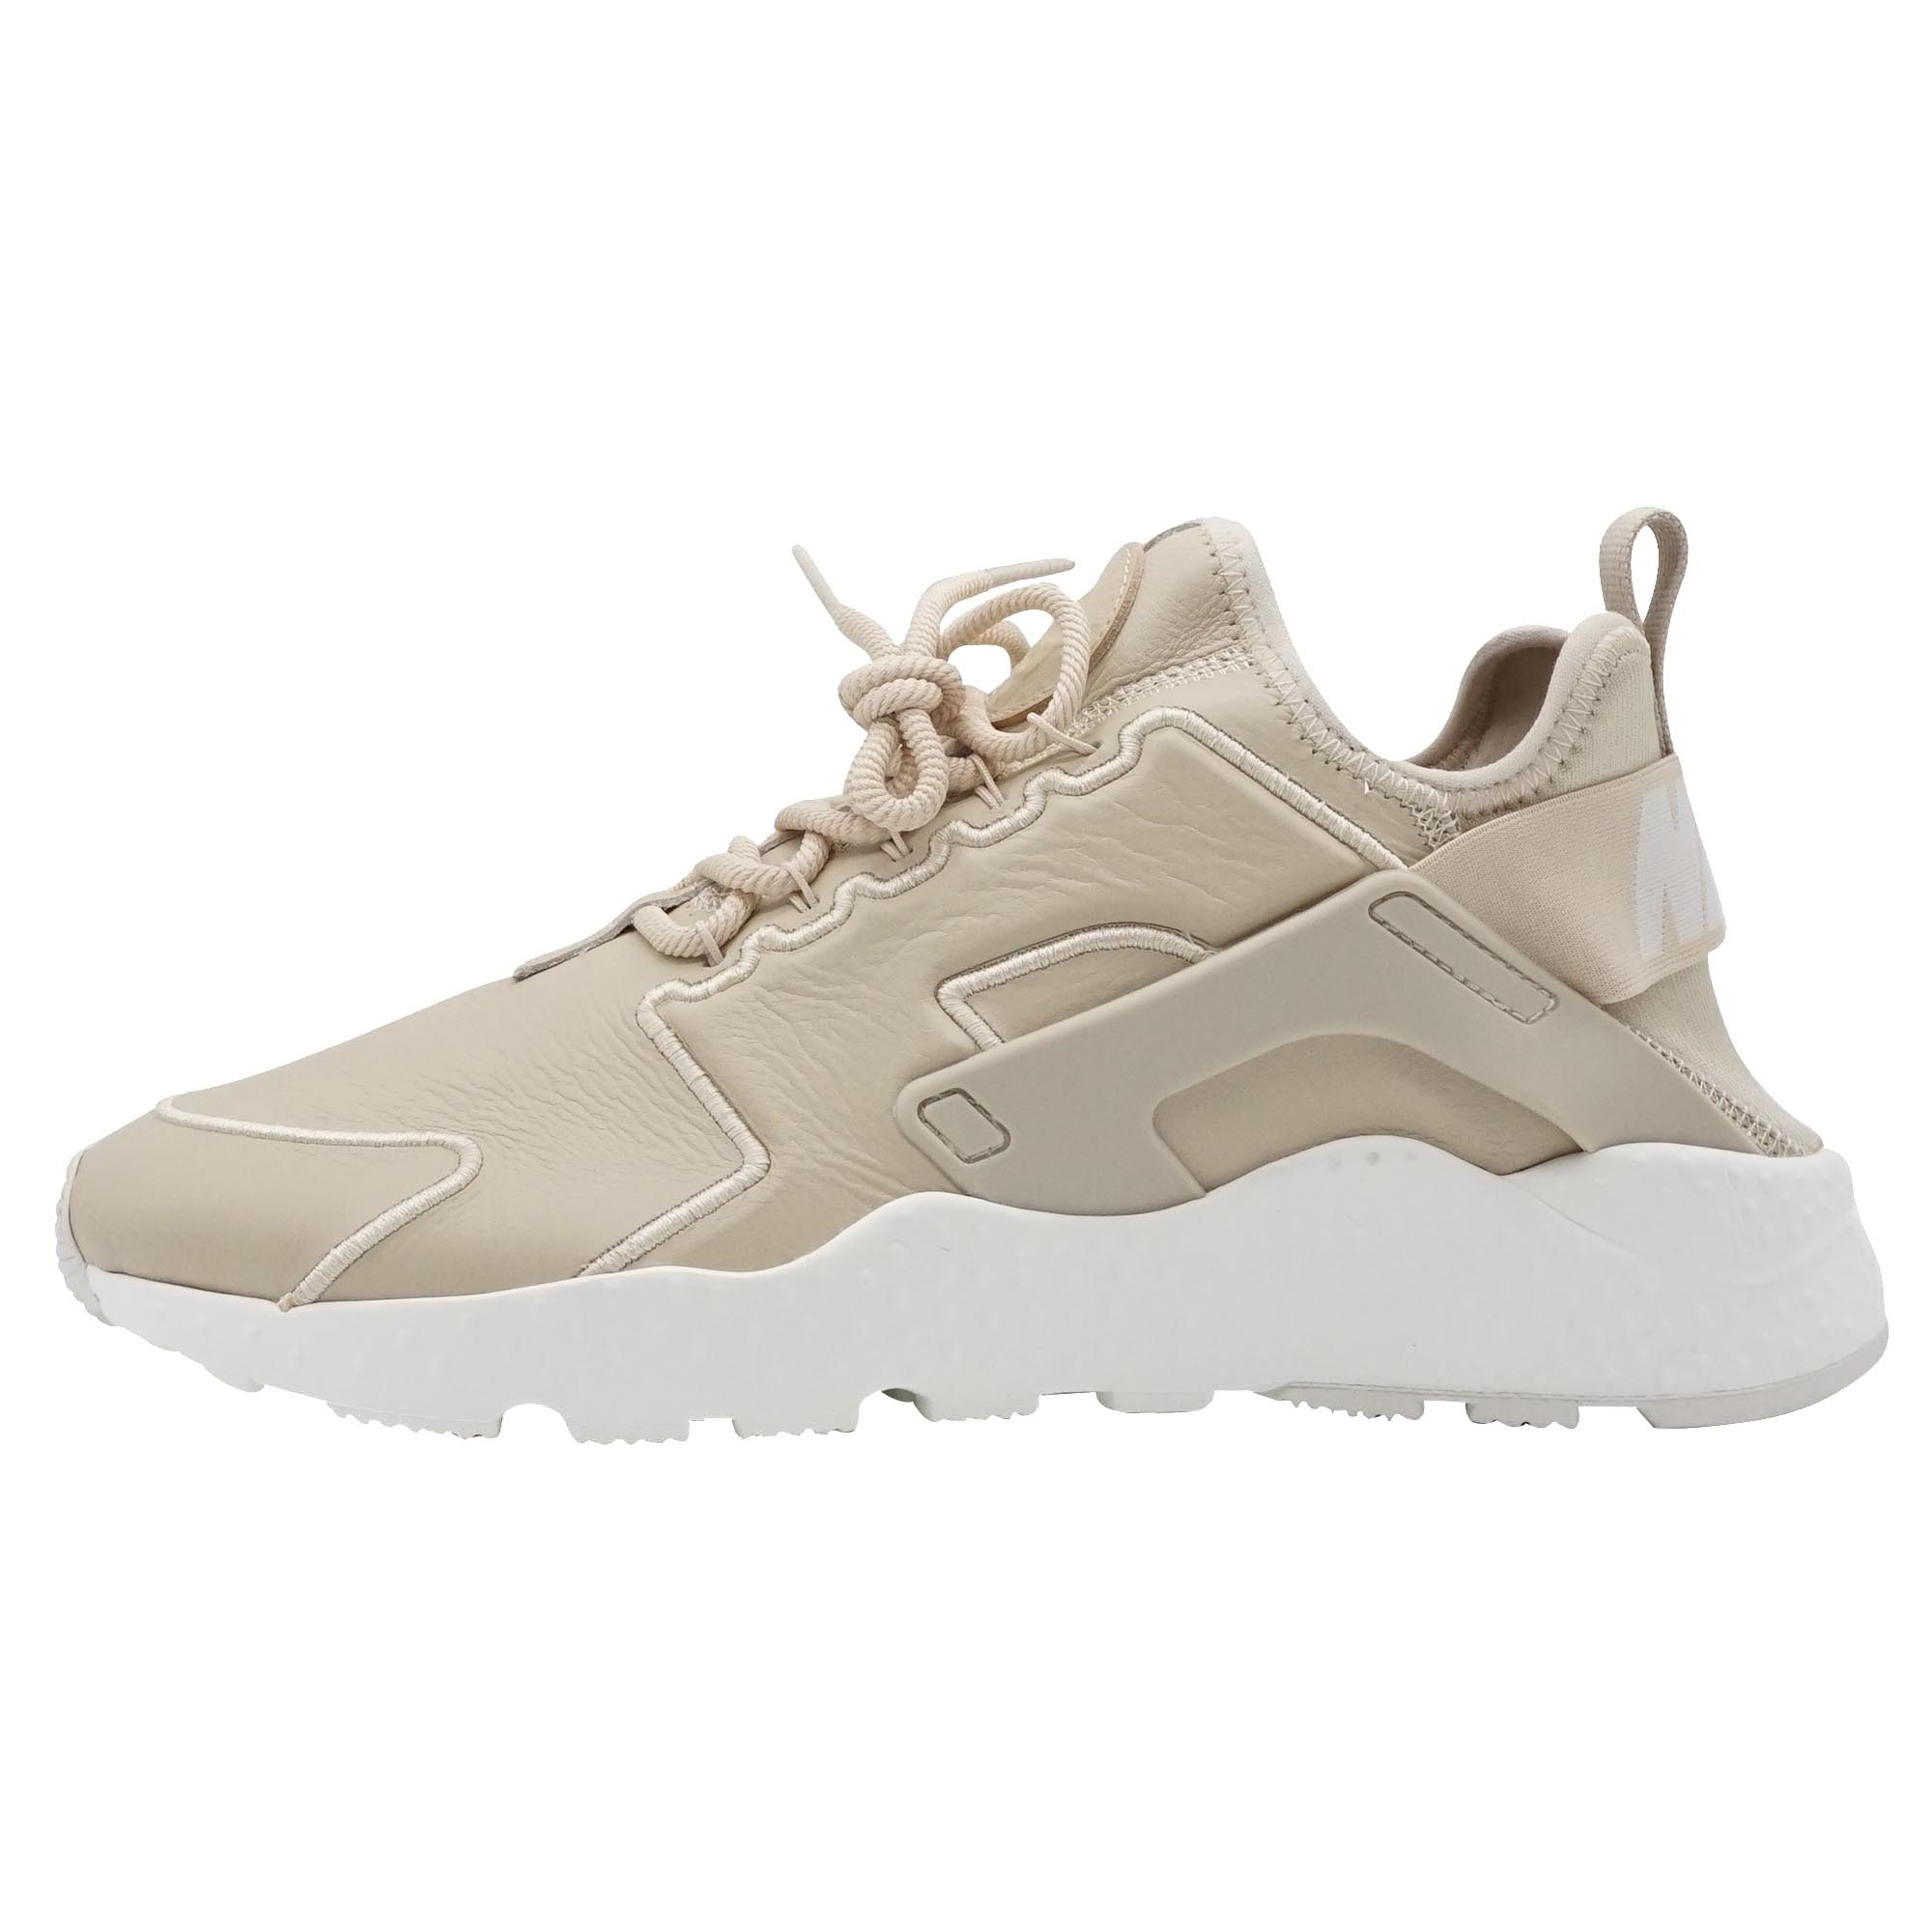 NIKE AIR HUARACHE RUN ULTRA SI Damen Sneaker Turnschuhe Beige ...